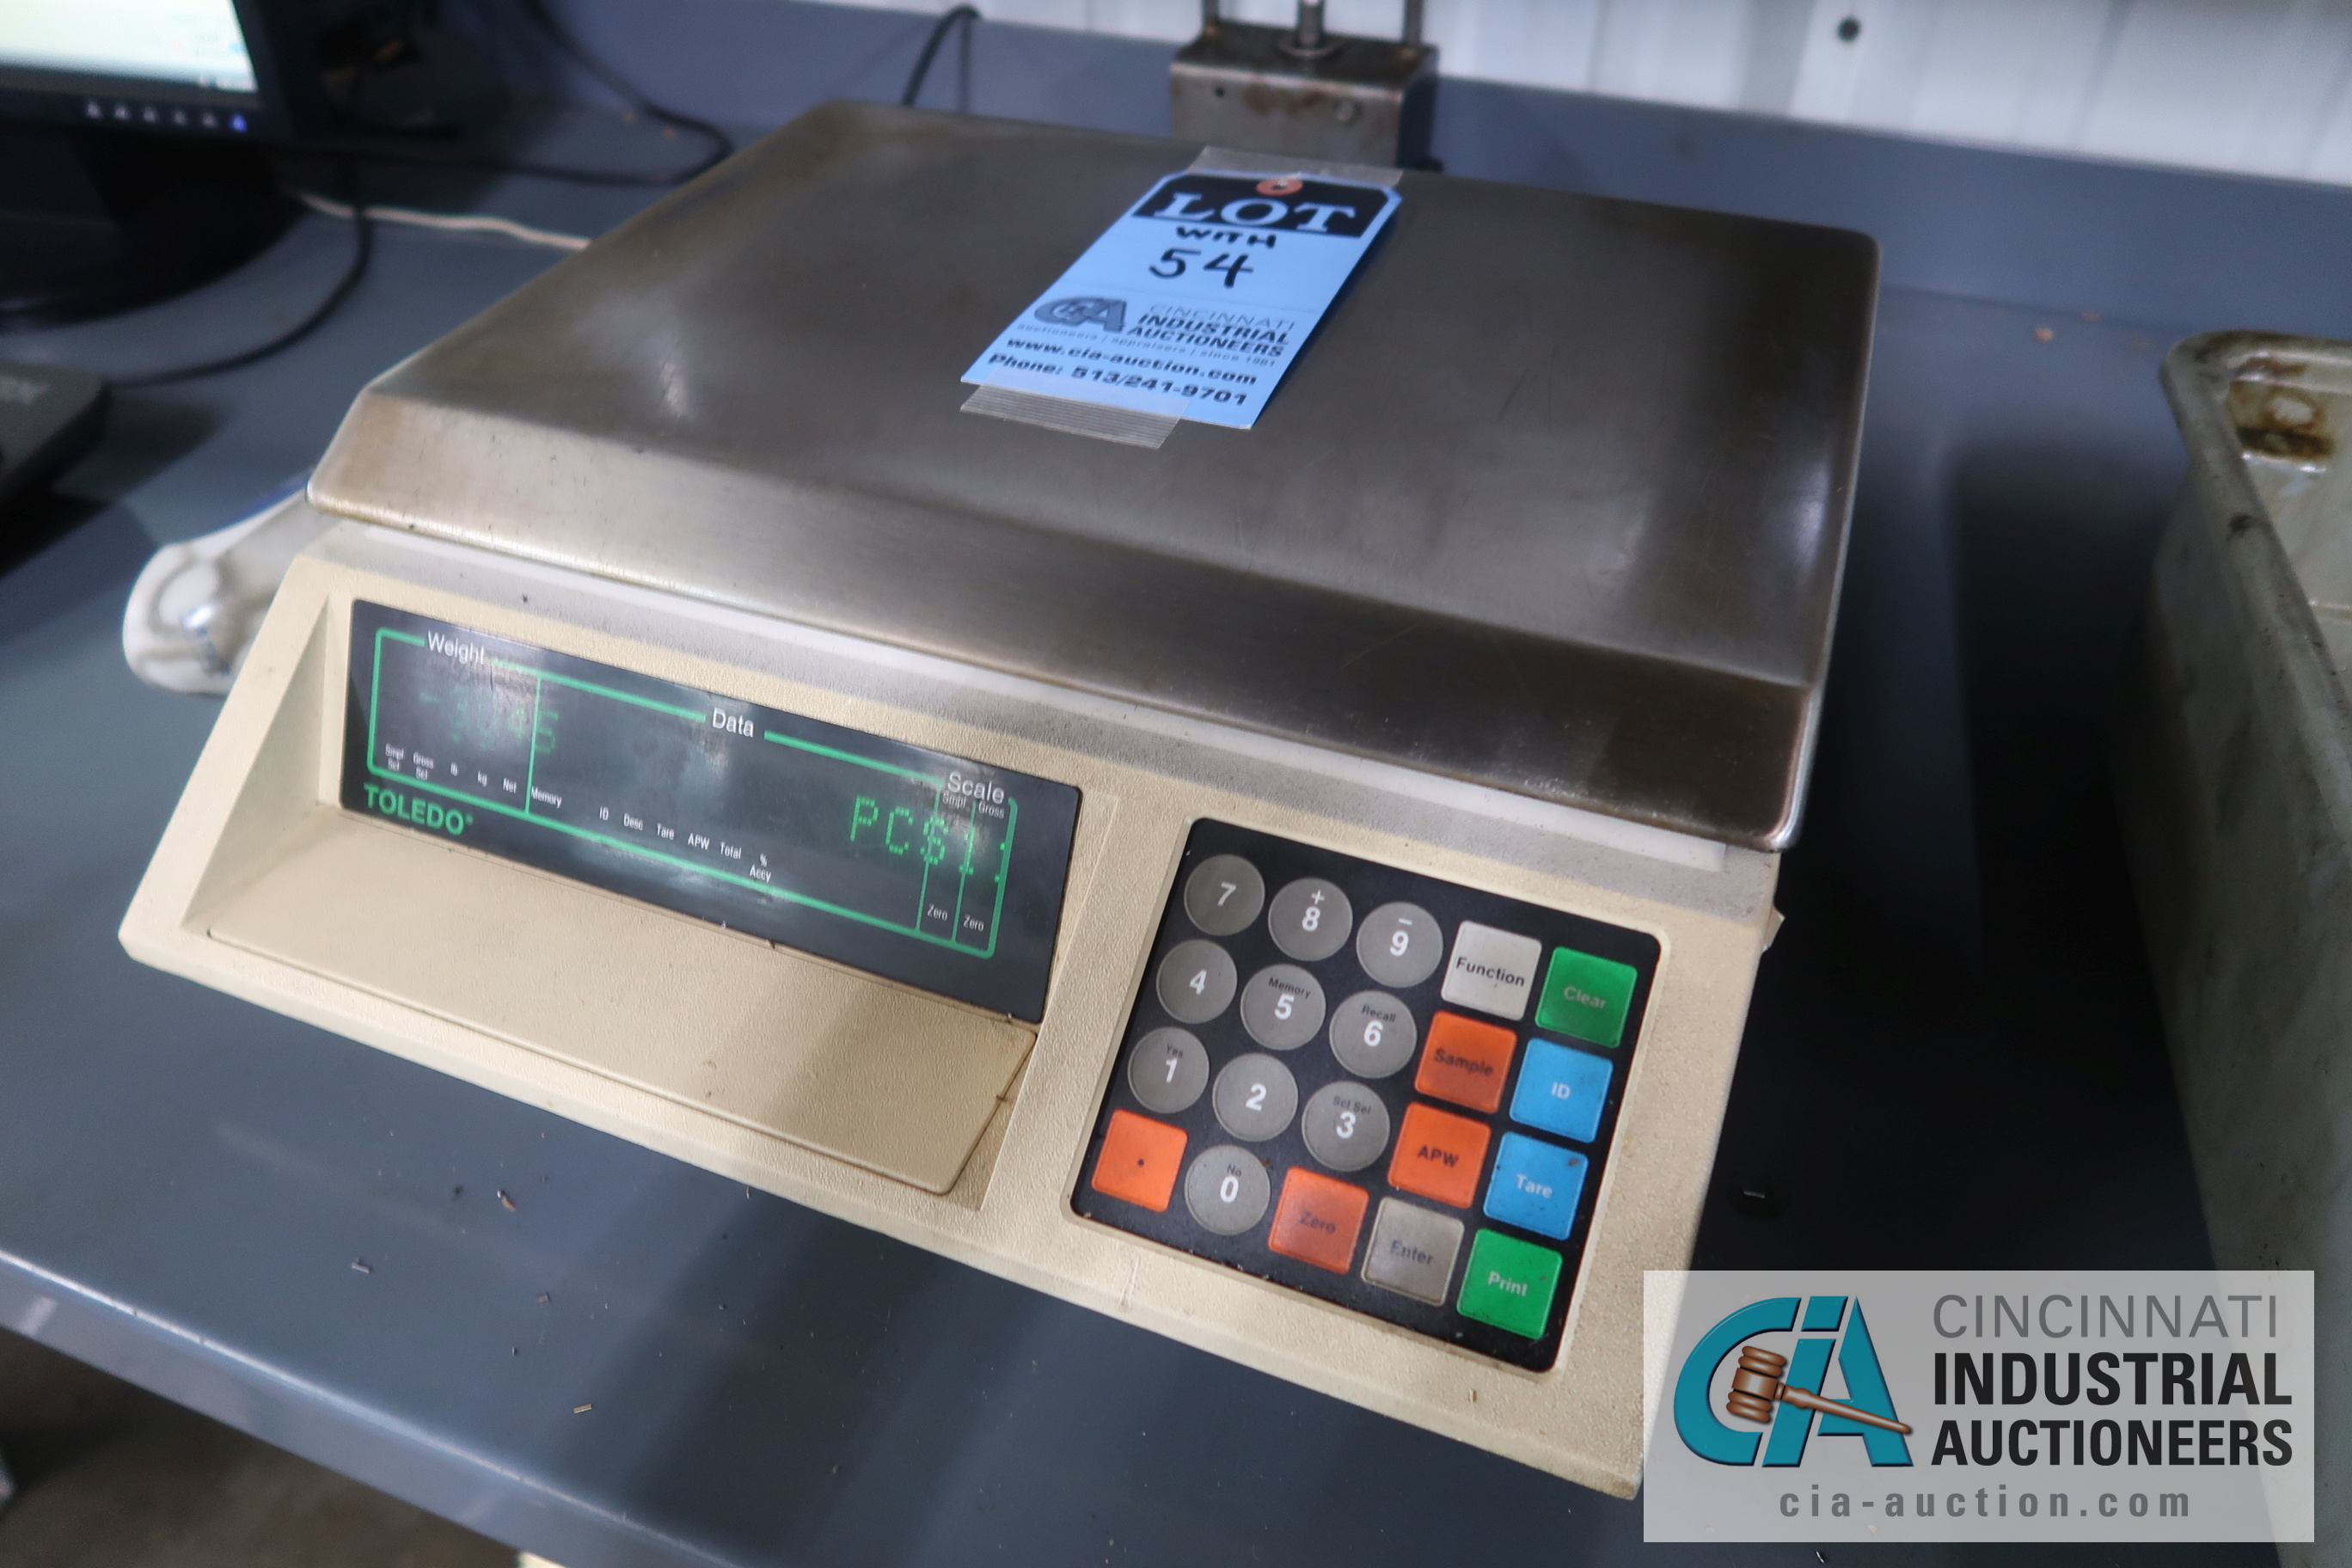 100 LB. CAPACITY METTLER-TOLEDO MODEL 8582 COUNTING SCALES WITH (1) 65 LB. CAPACITY ULINE MODEL H- - Image 2 of 3